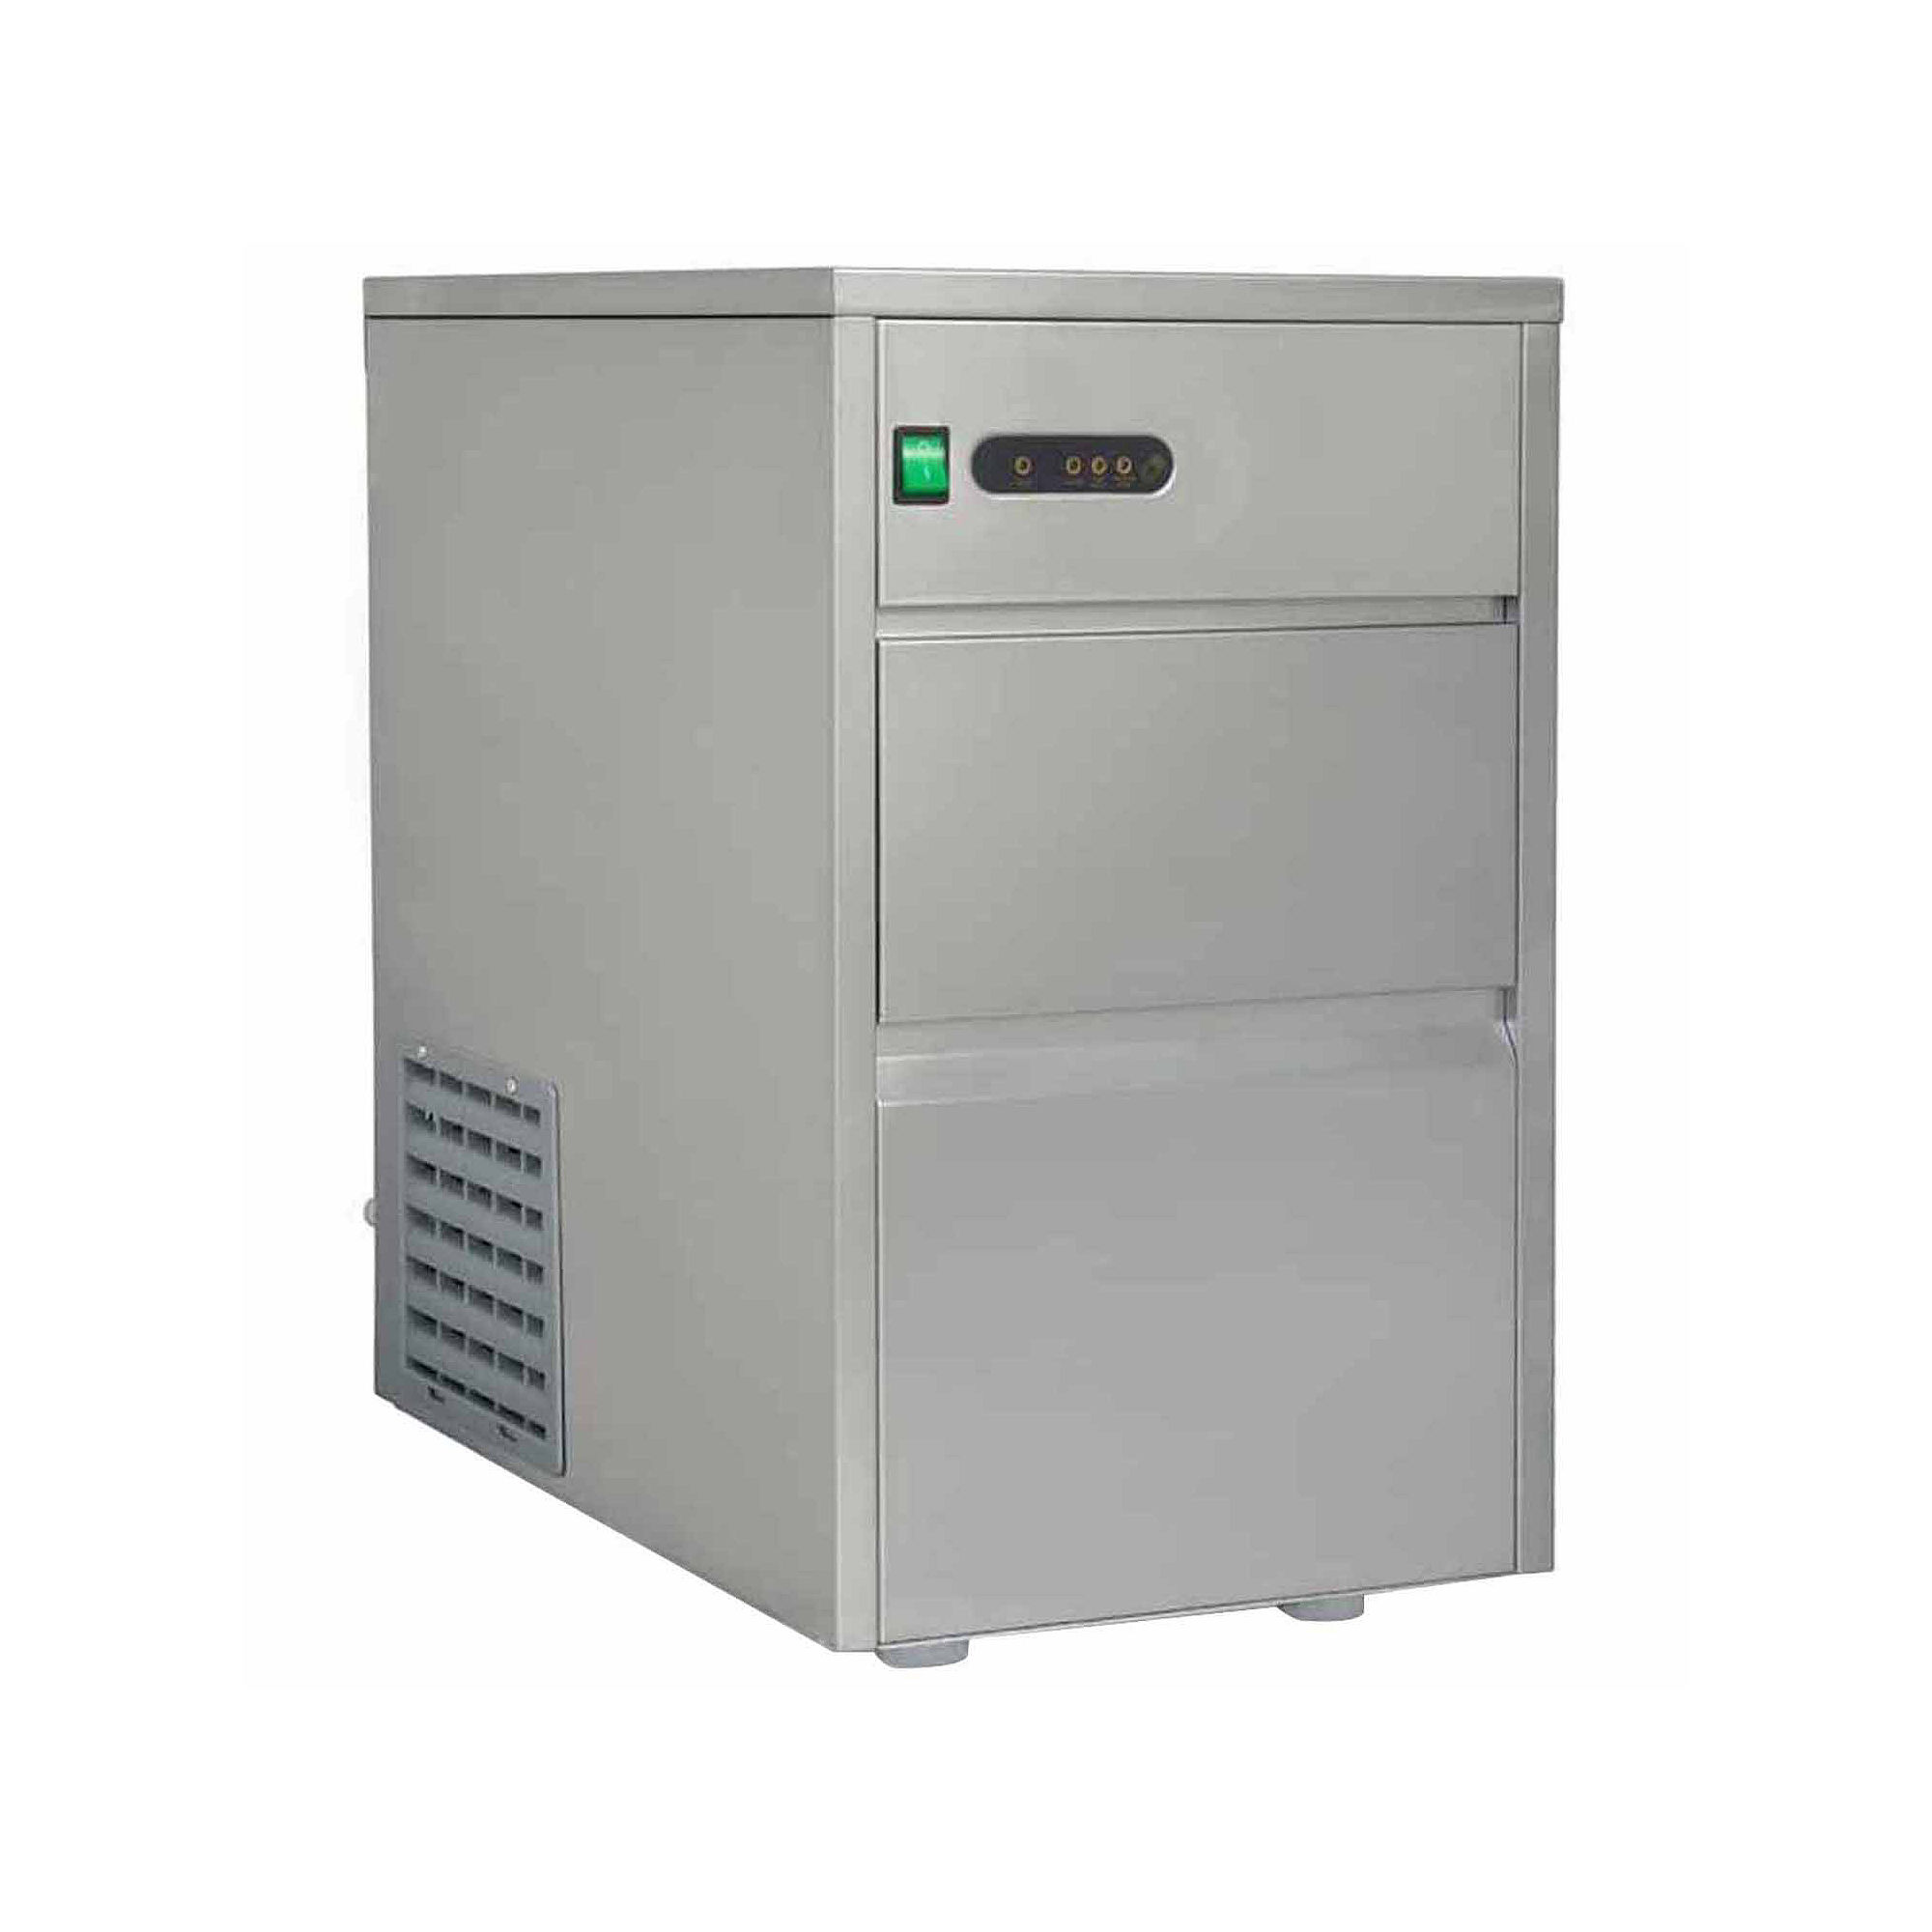 SPT IM-1108C: 110 lbs Automatic Stainless Steel Ice Maker